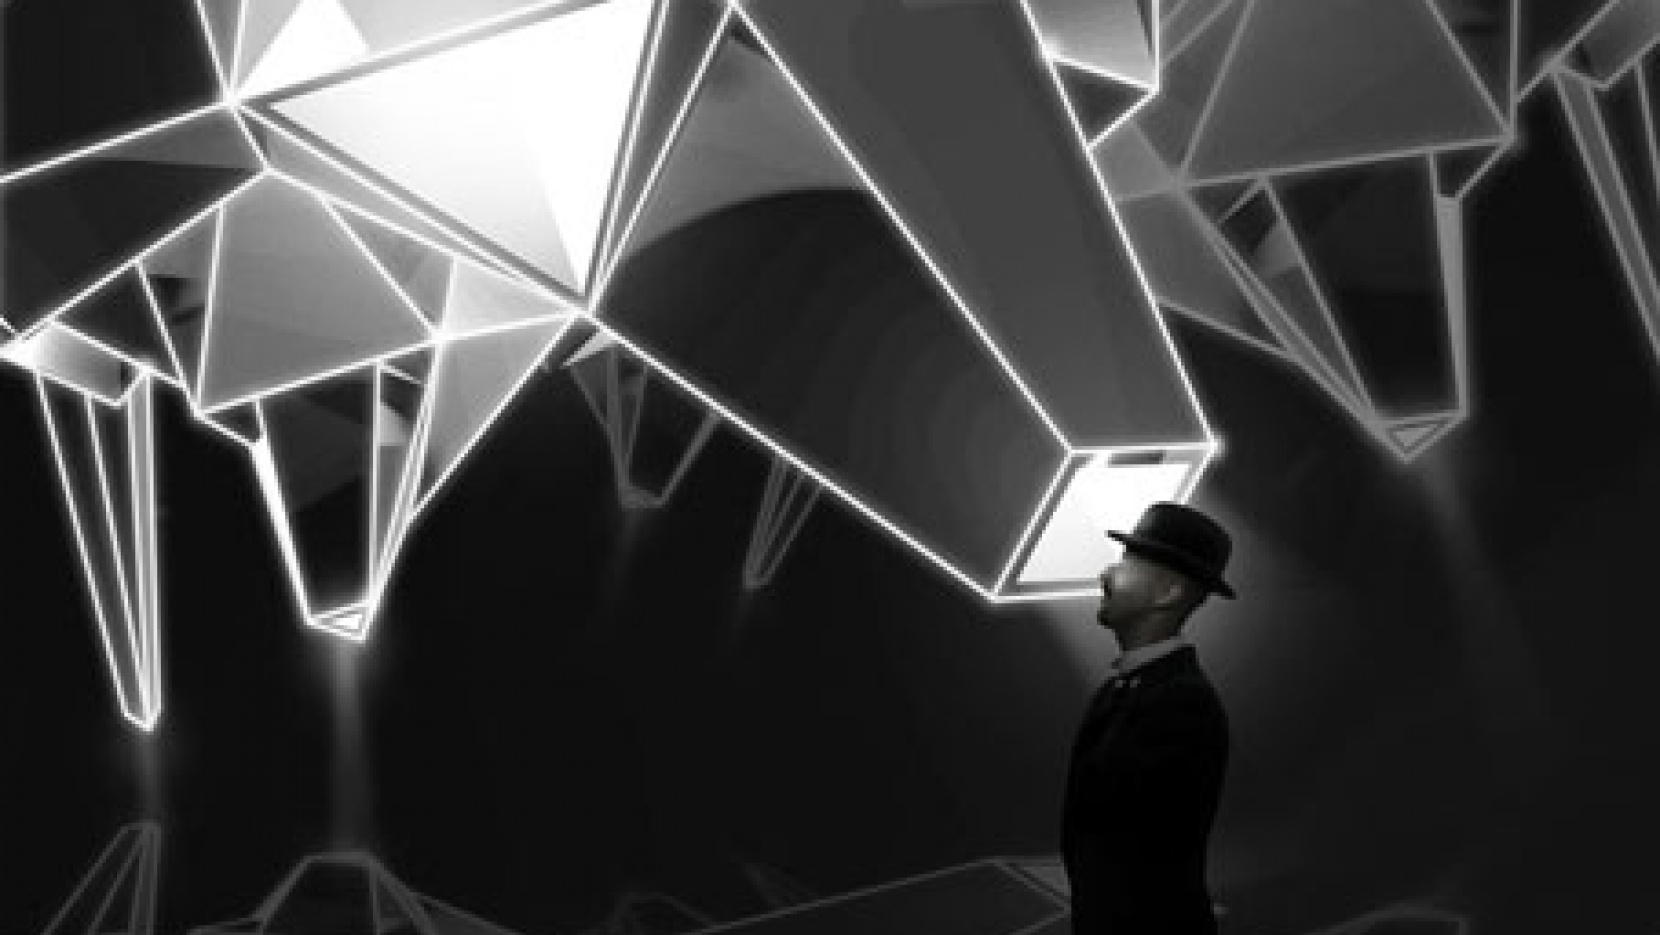 Mister X - a journey inside the material | Yatzer